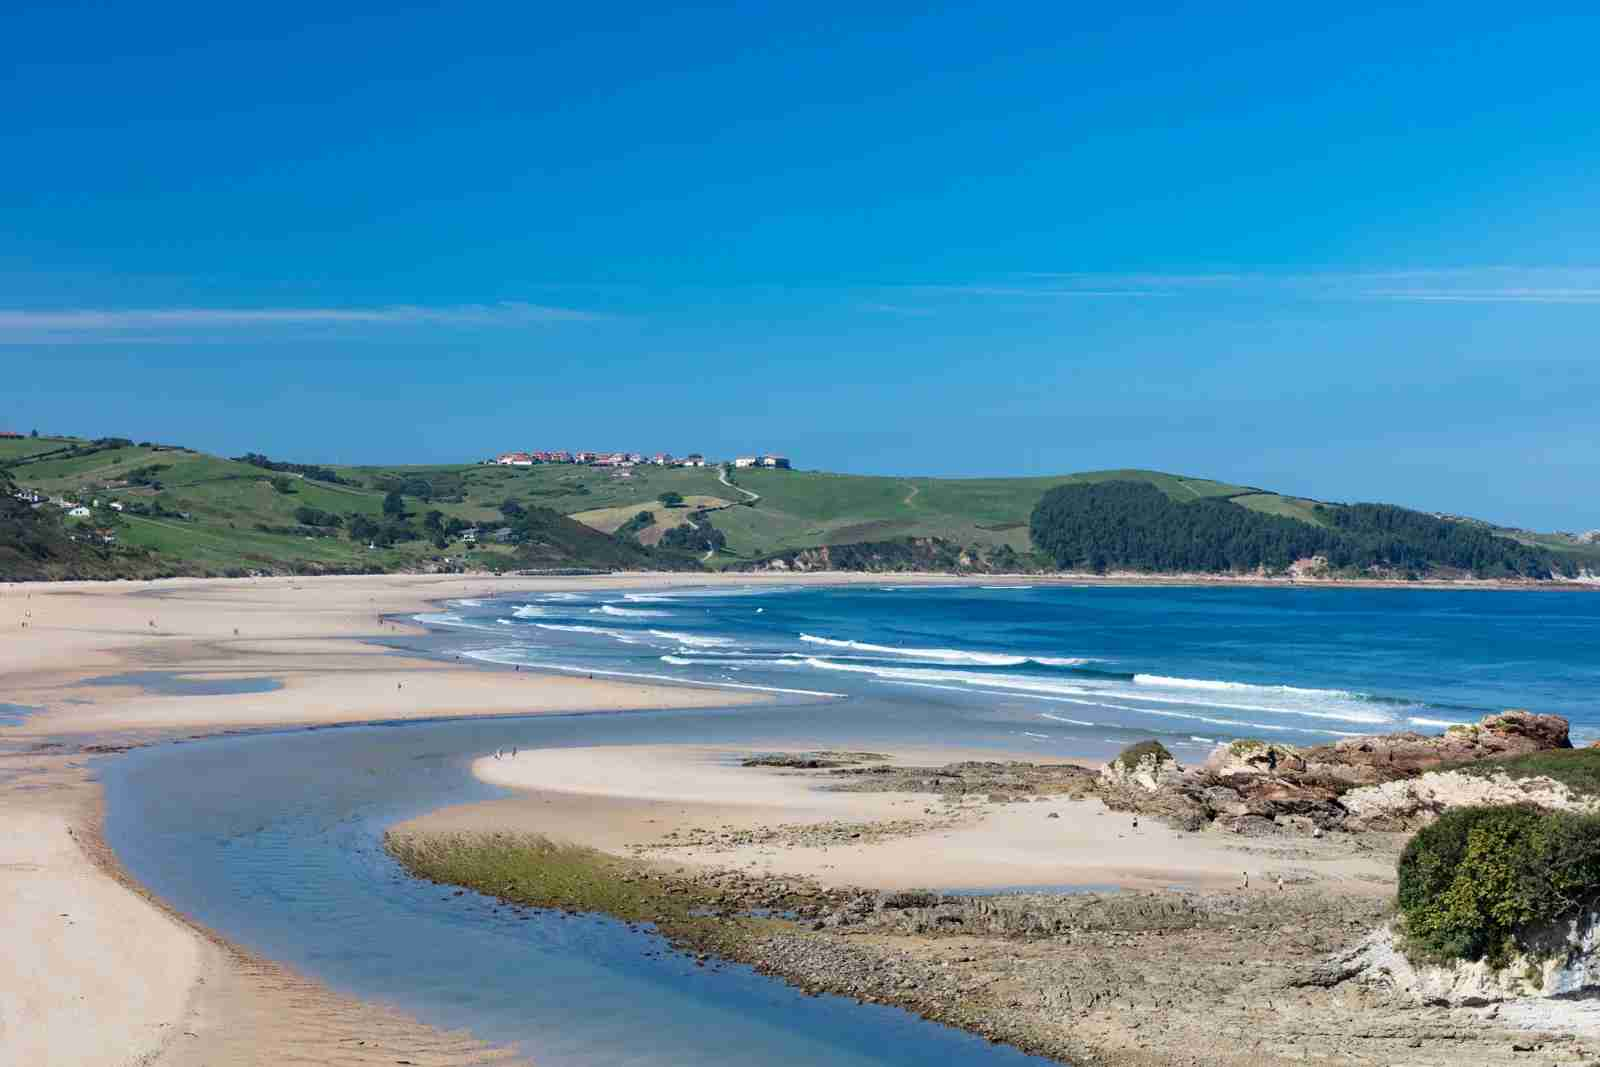 Playa Oyambre in Cantabria. (Photo by Pawel Tocyznski/Getty Images)